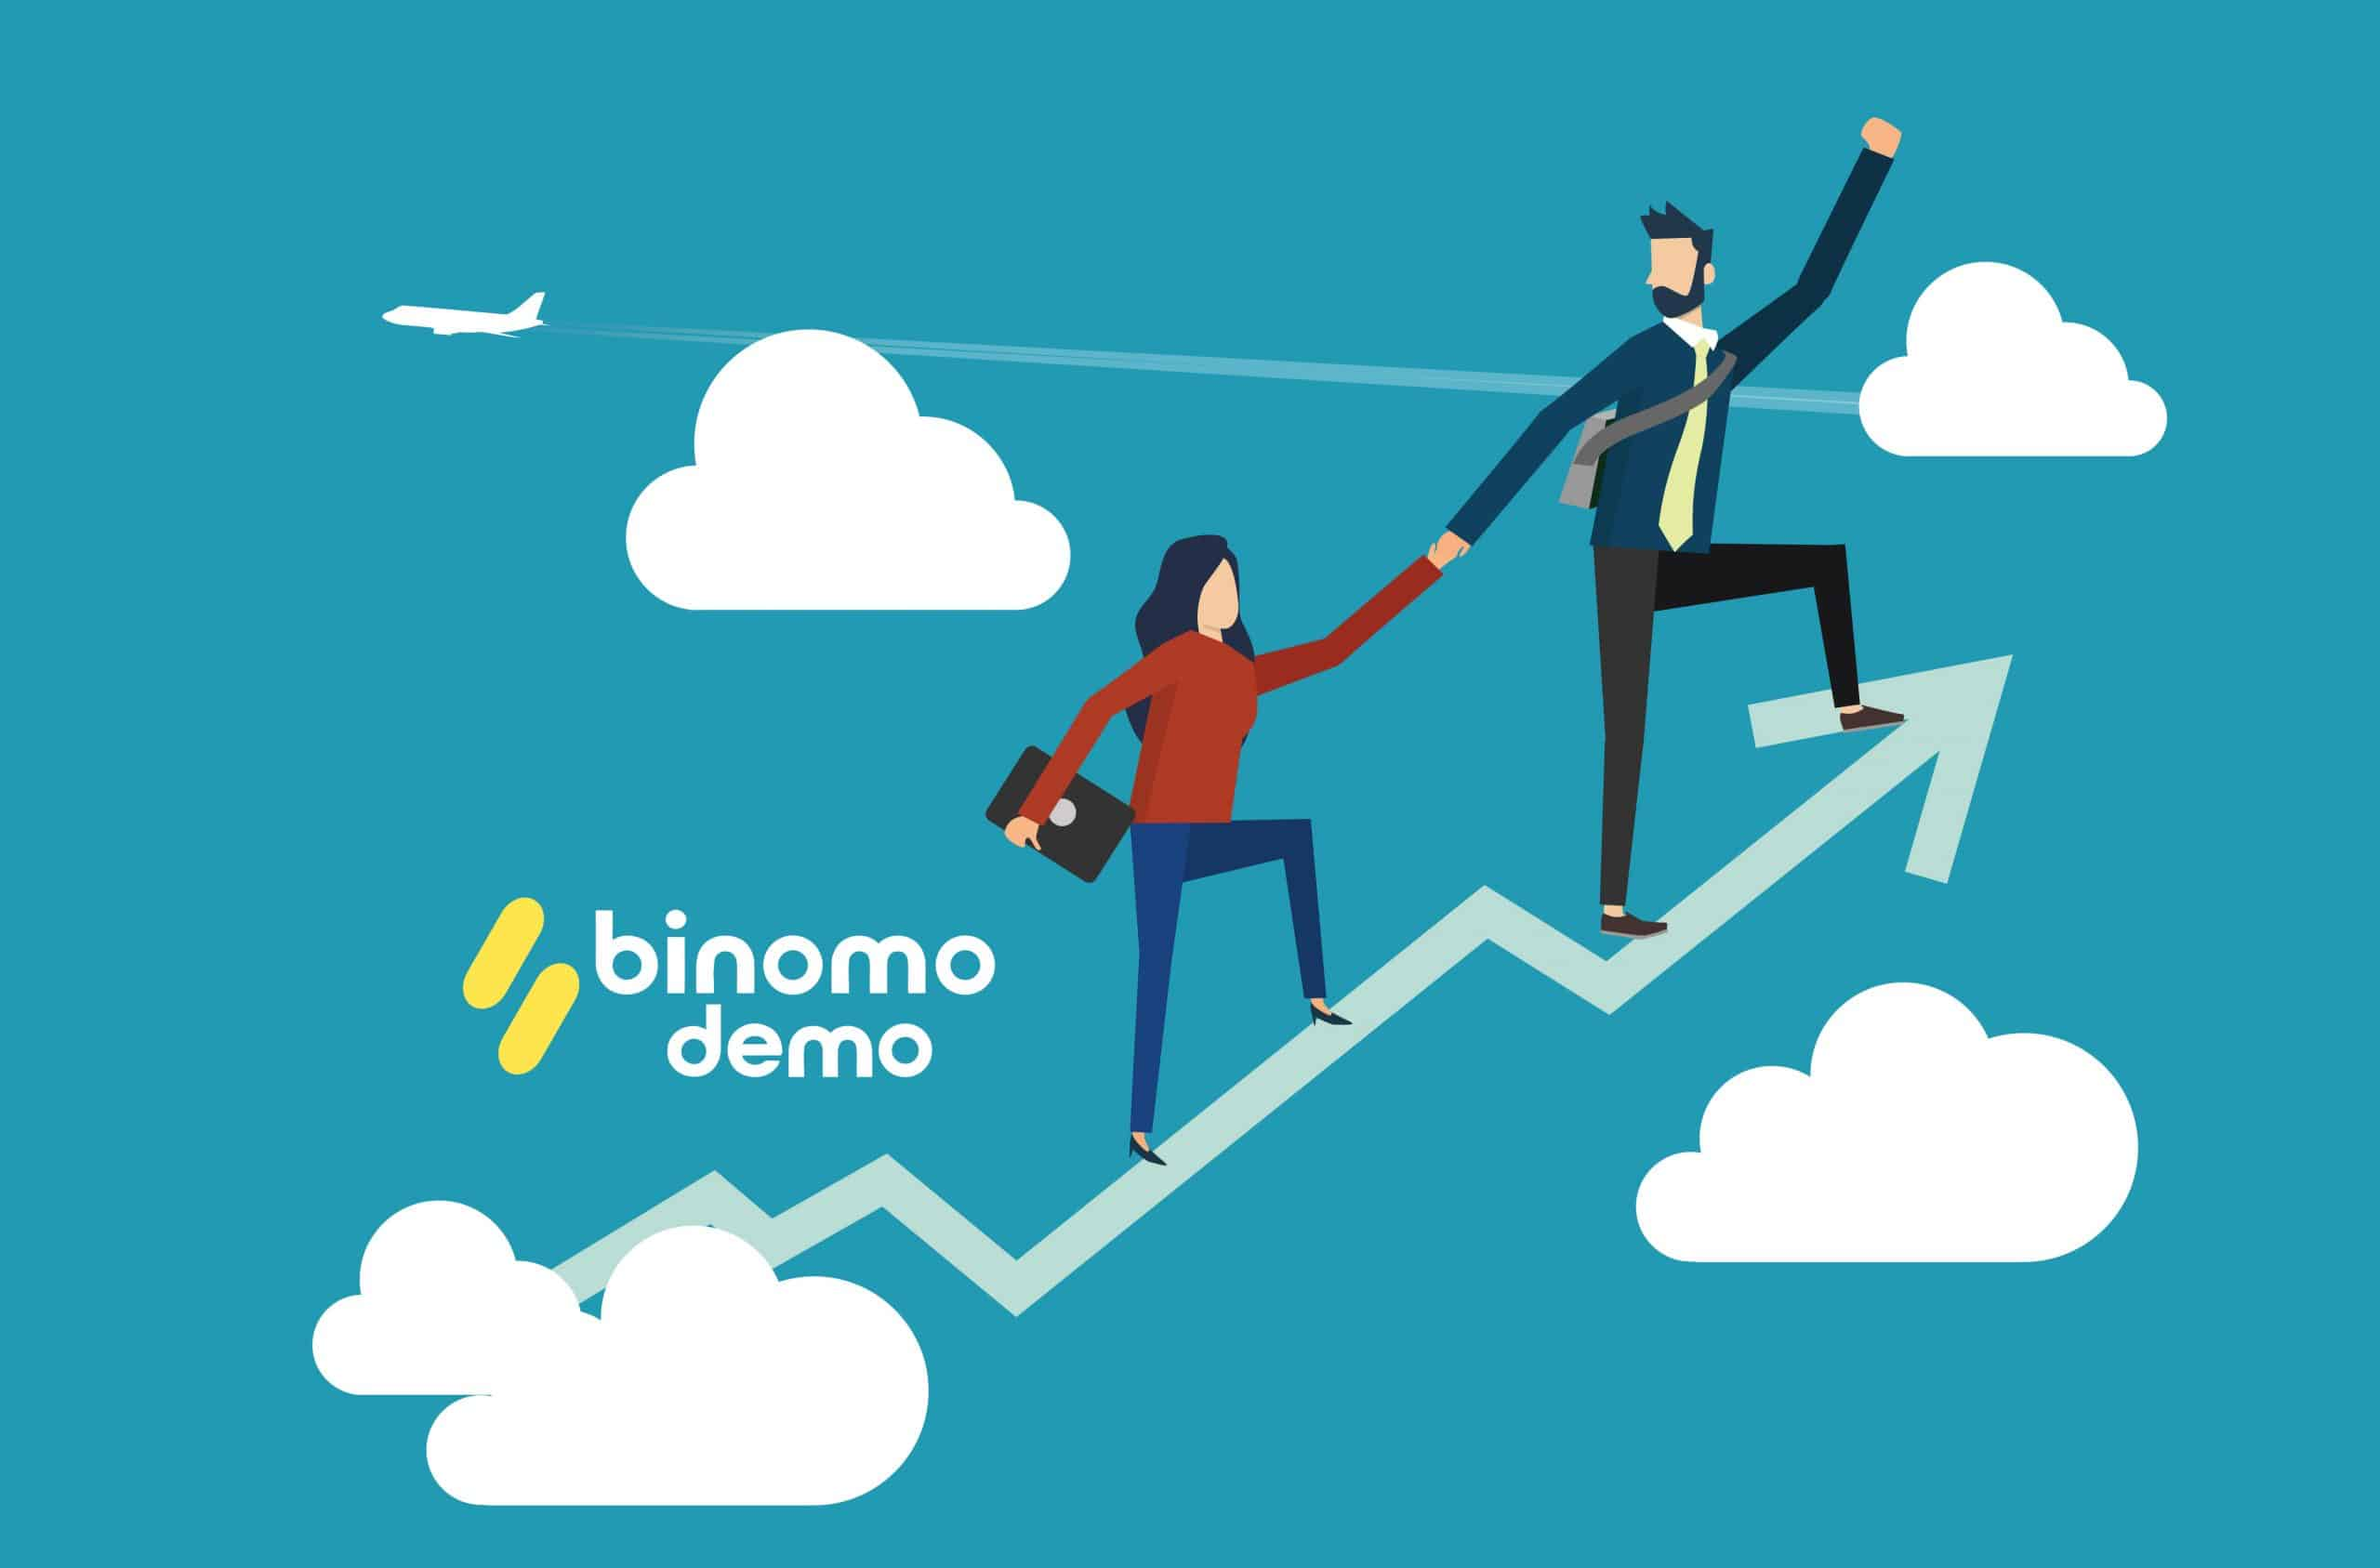 binomo trading with trends